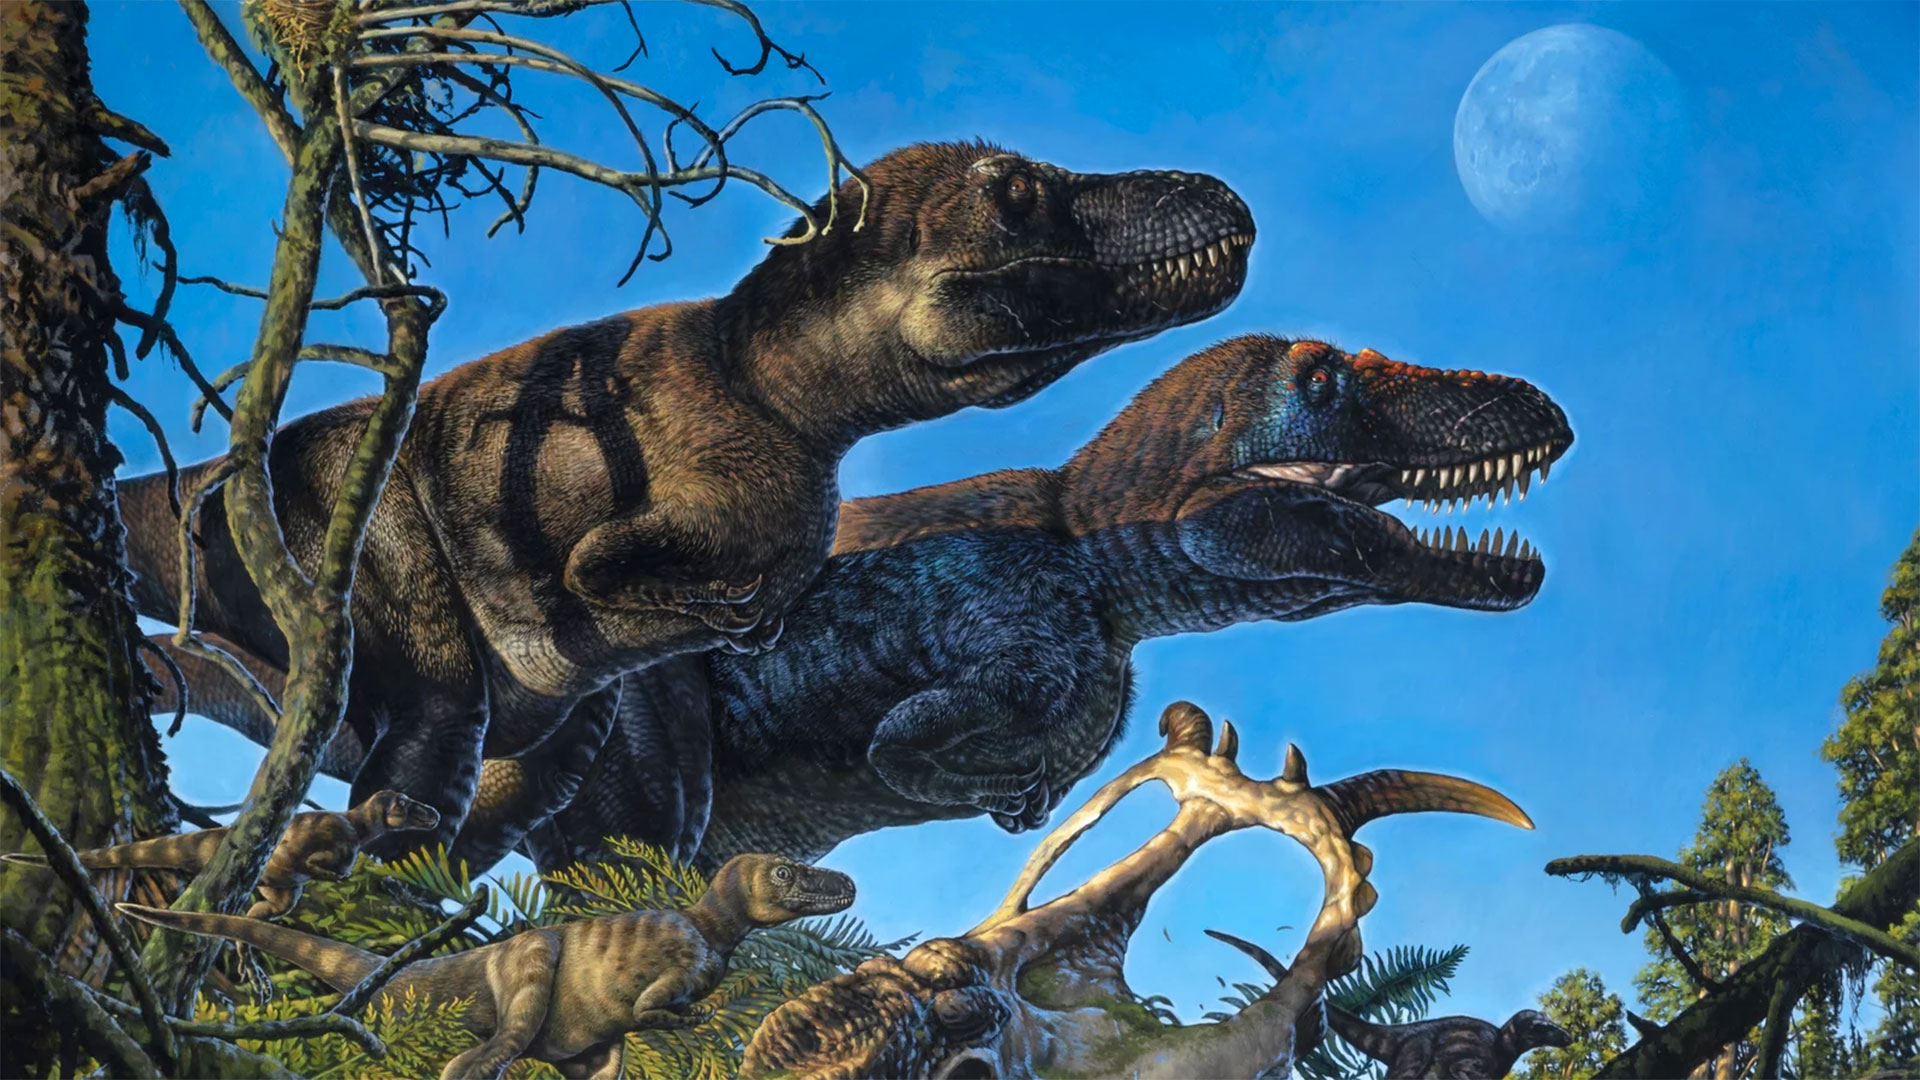 An illustration shows a pair of adult tyrannosaurs and their young living in the Arctic during the Cretaceous Period.